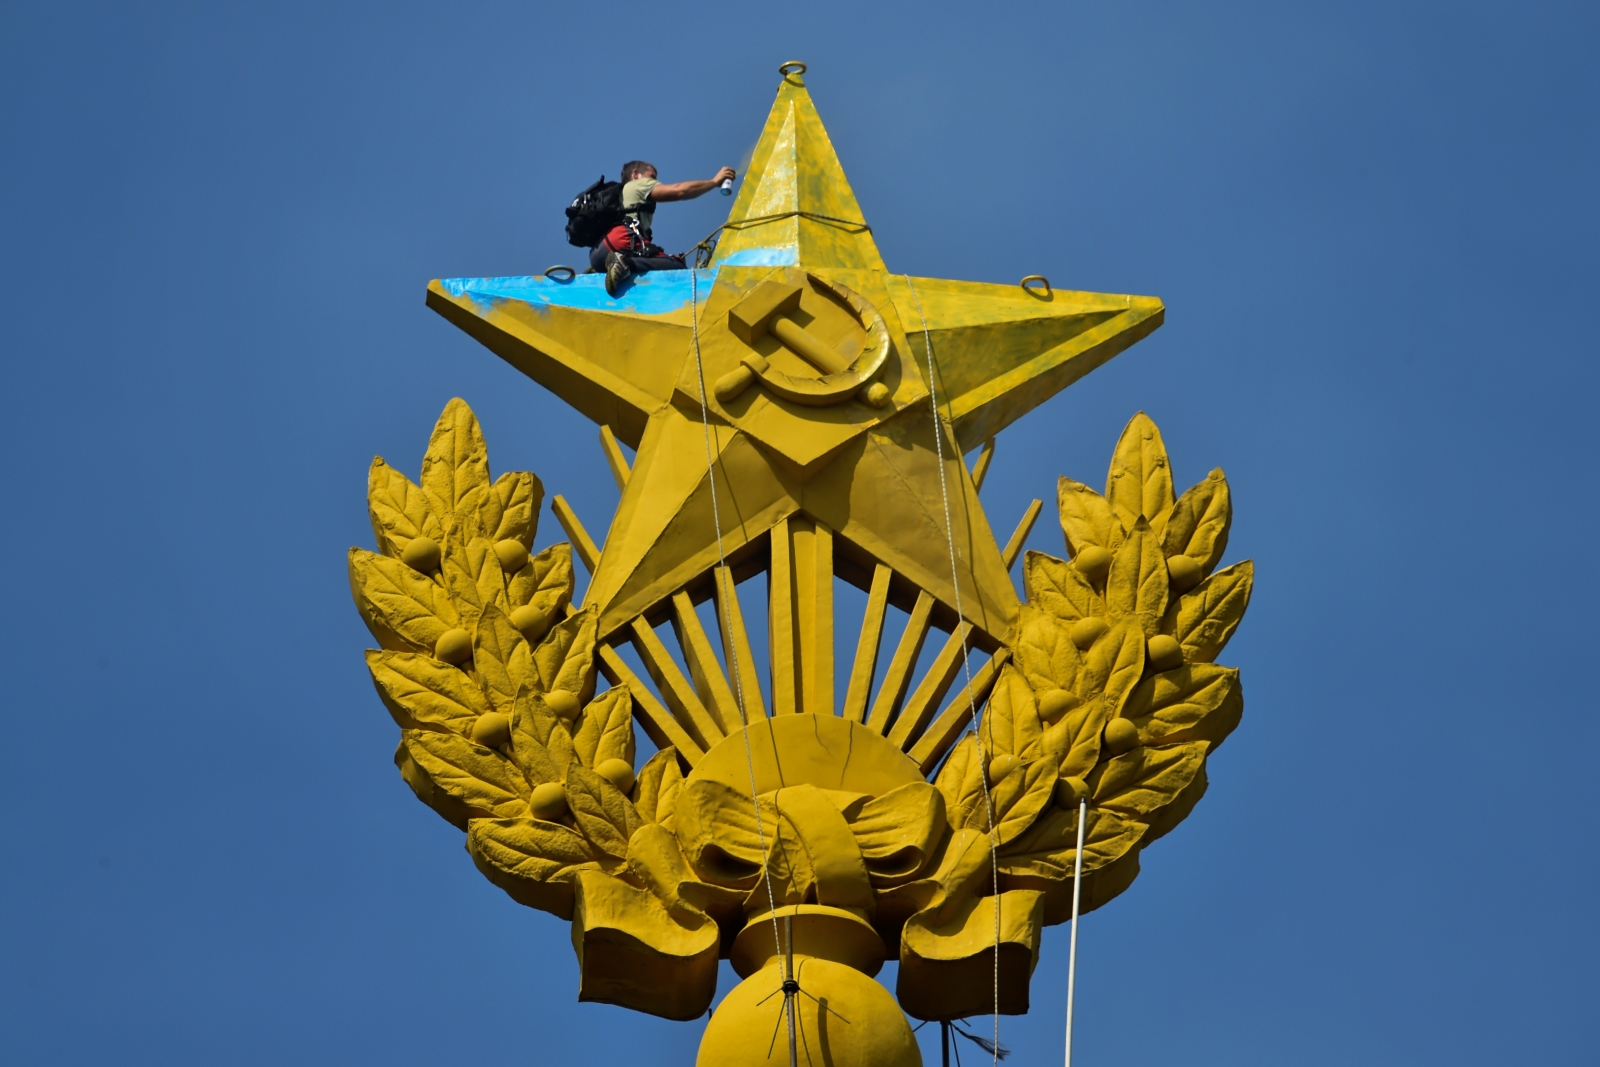 A worker paints over the star on Moscow's Stalin-era skyscraper. (AFP KIRILL KUDRYAVTSEV)